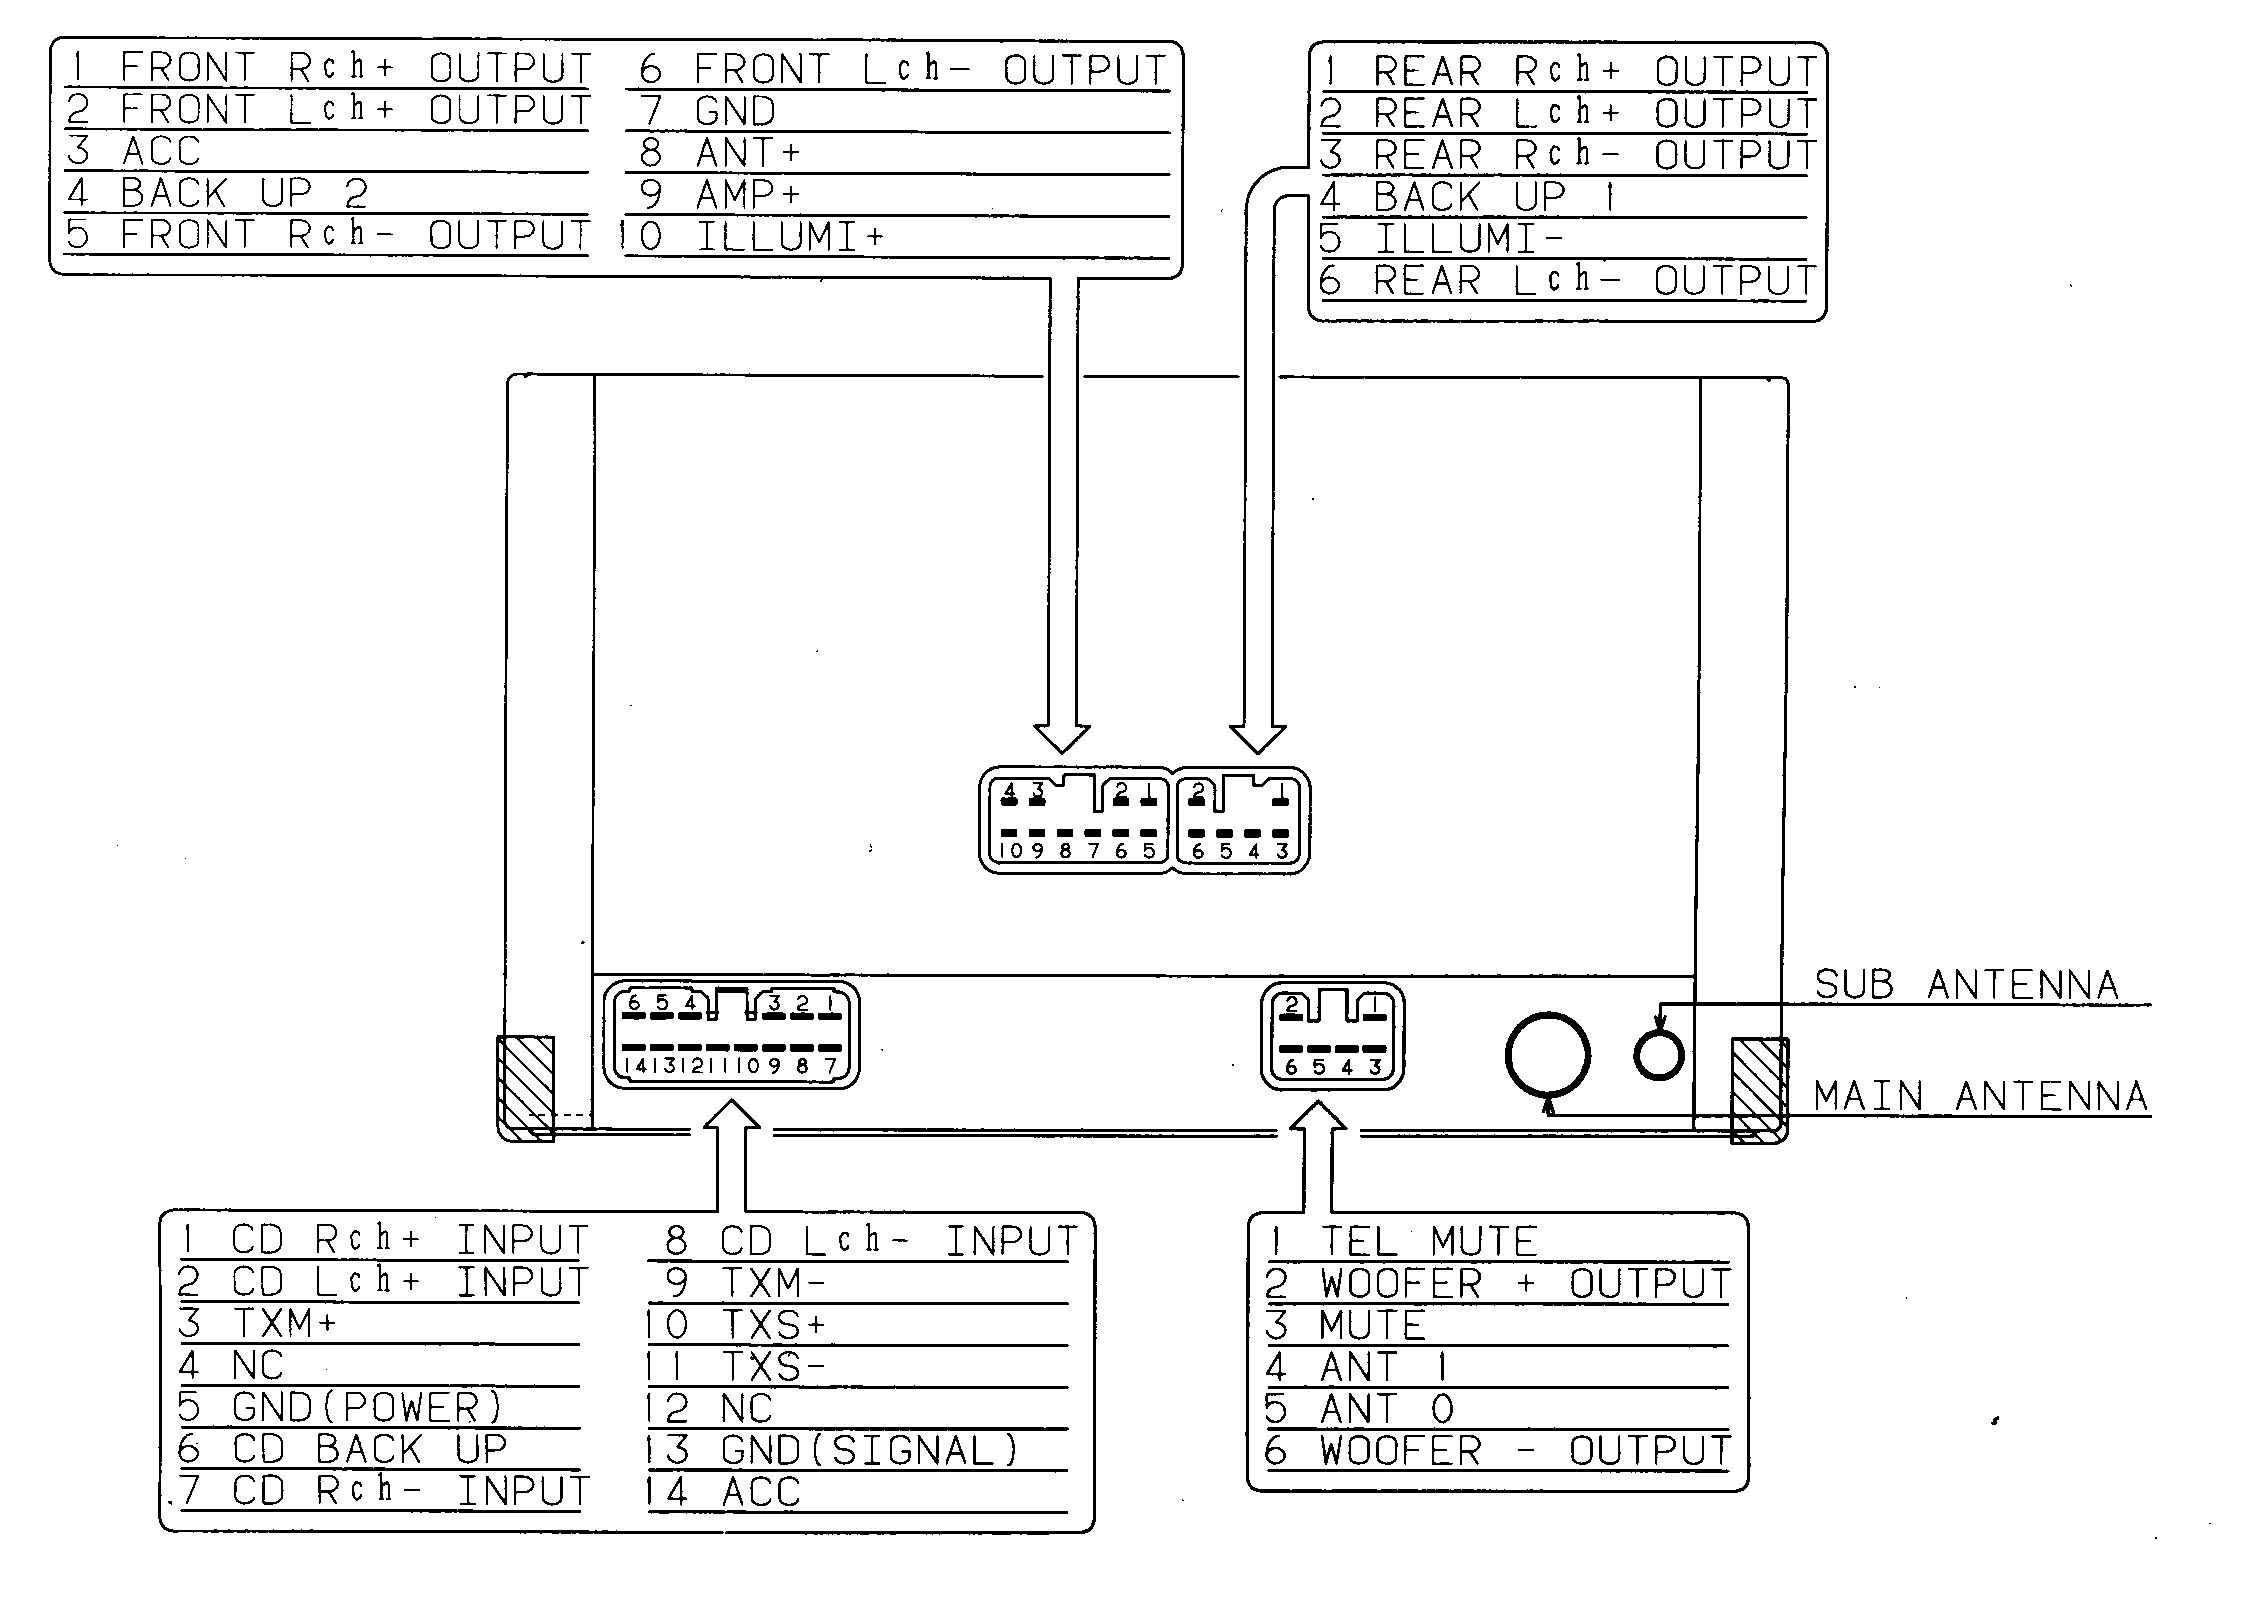 Mitsubishi Infinity Radio Amp Wiring Diagram Free 1998 Eclipse Spyder Picture Circuit Diagrams Rh 17 53 Aspire Atlantis De 2001 2004